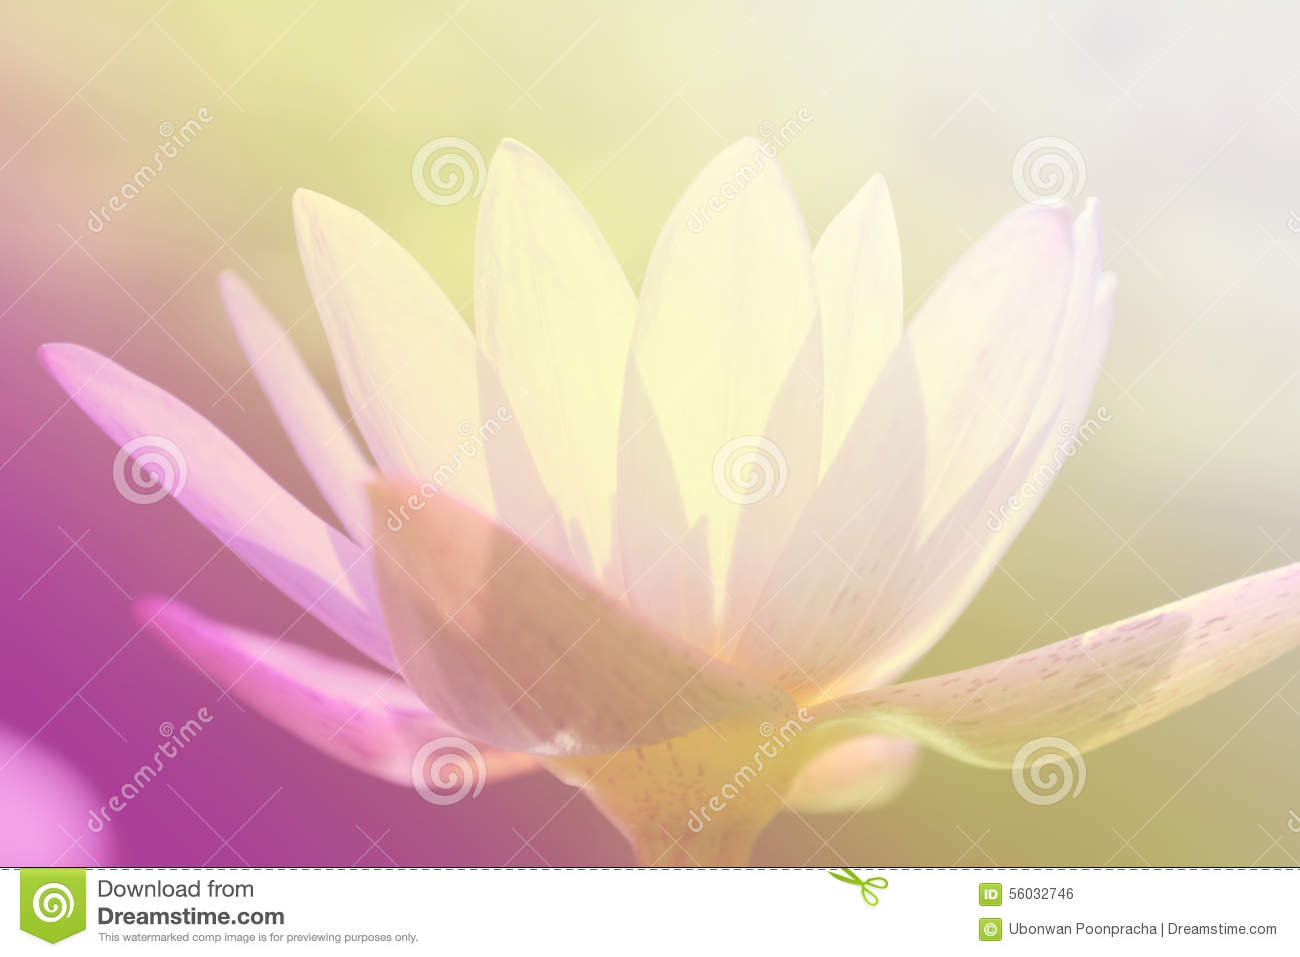 Old fashioned what colors do lotus flowers come in image coloring perfect what colors do lotus flowers come in festooning coloring izmirmasajfo